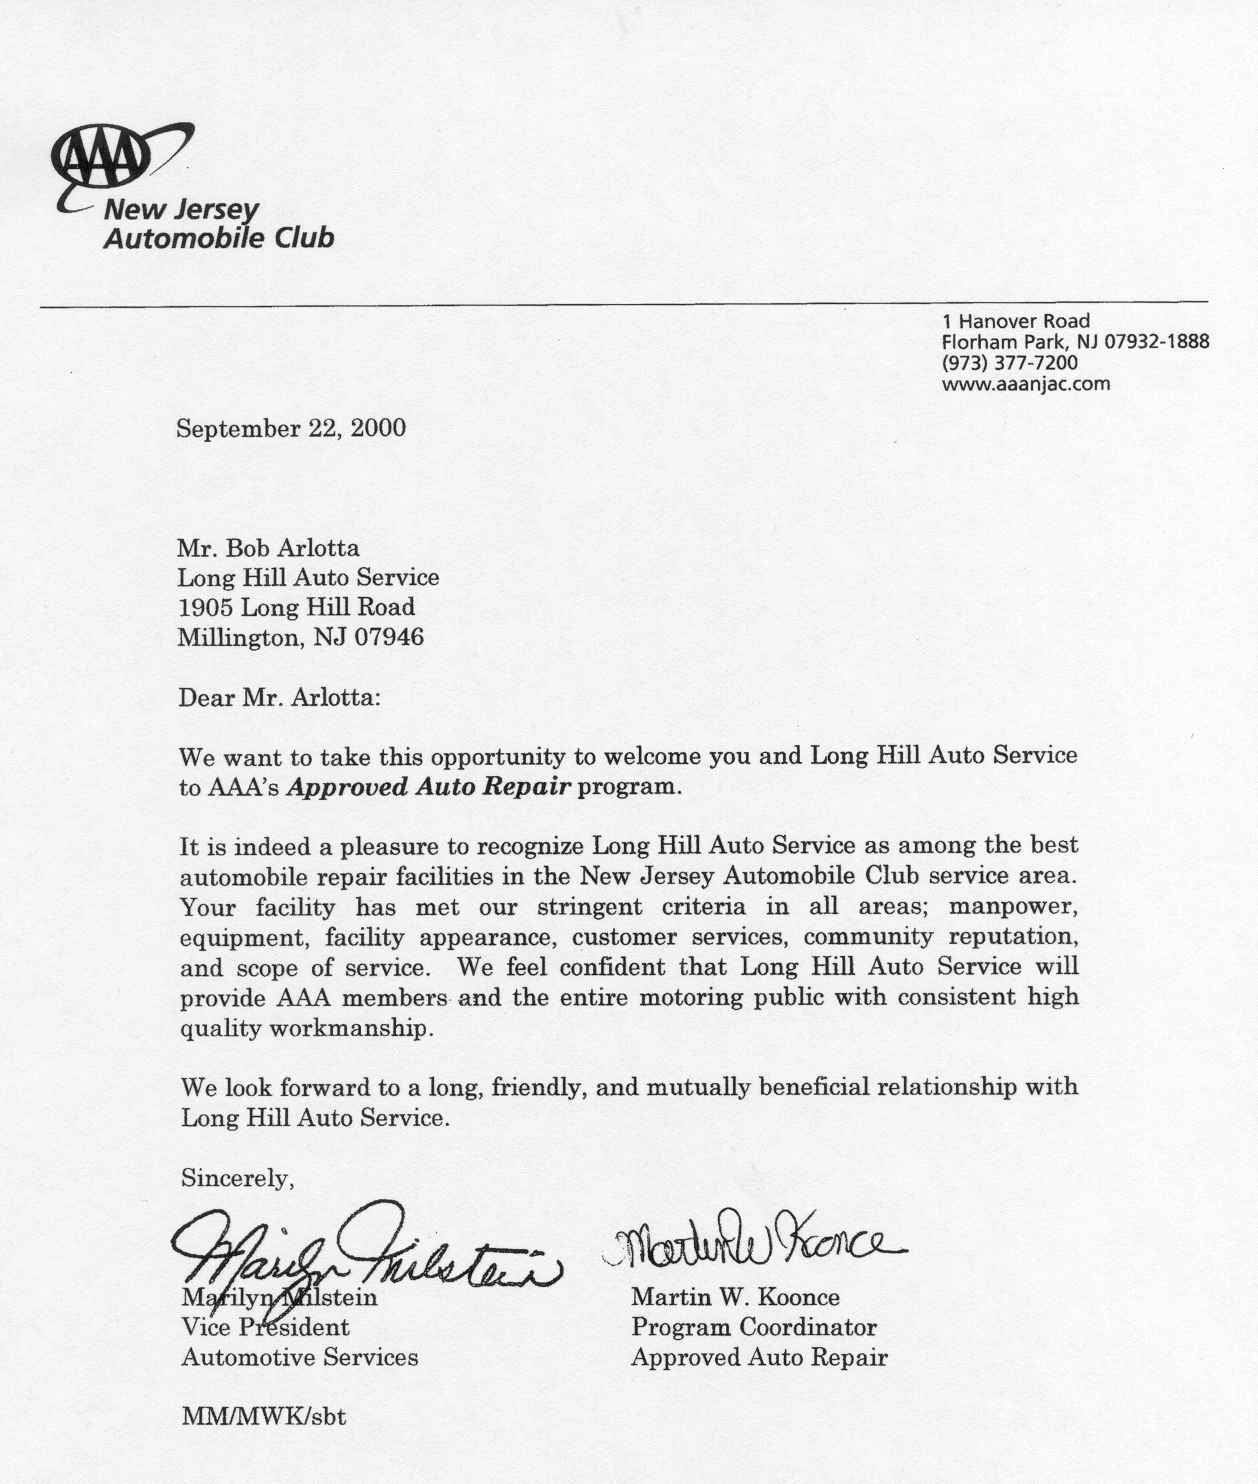 Sample Letter Of Recognition For Job Well Done from longhillauto.com